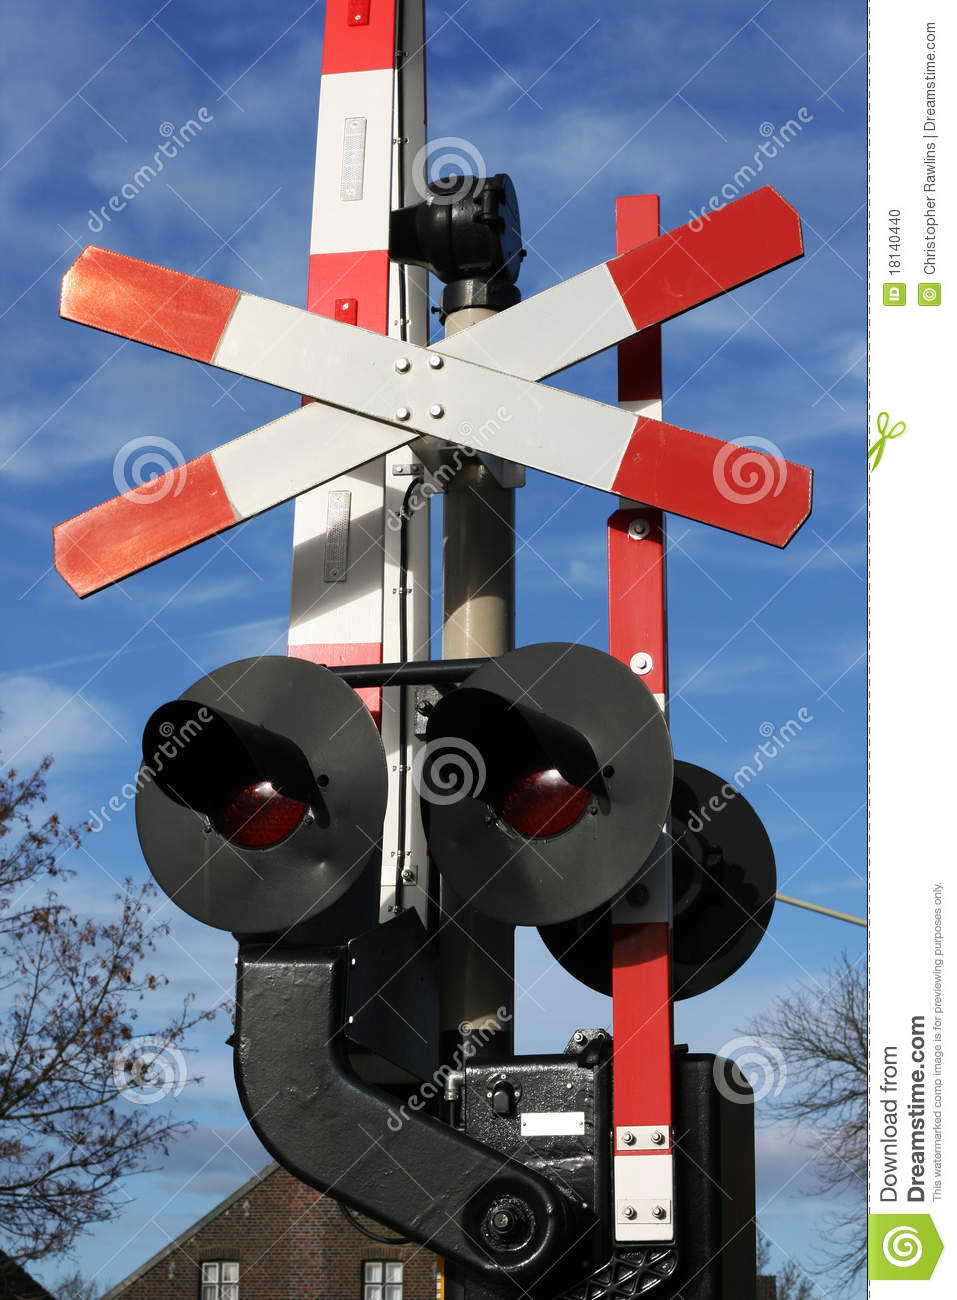 Railway and Road Crossing